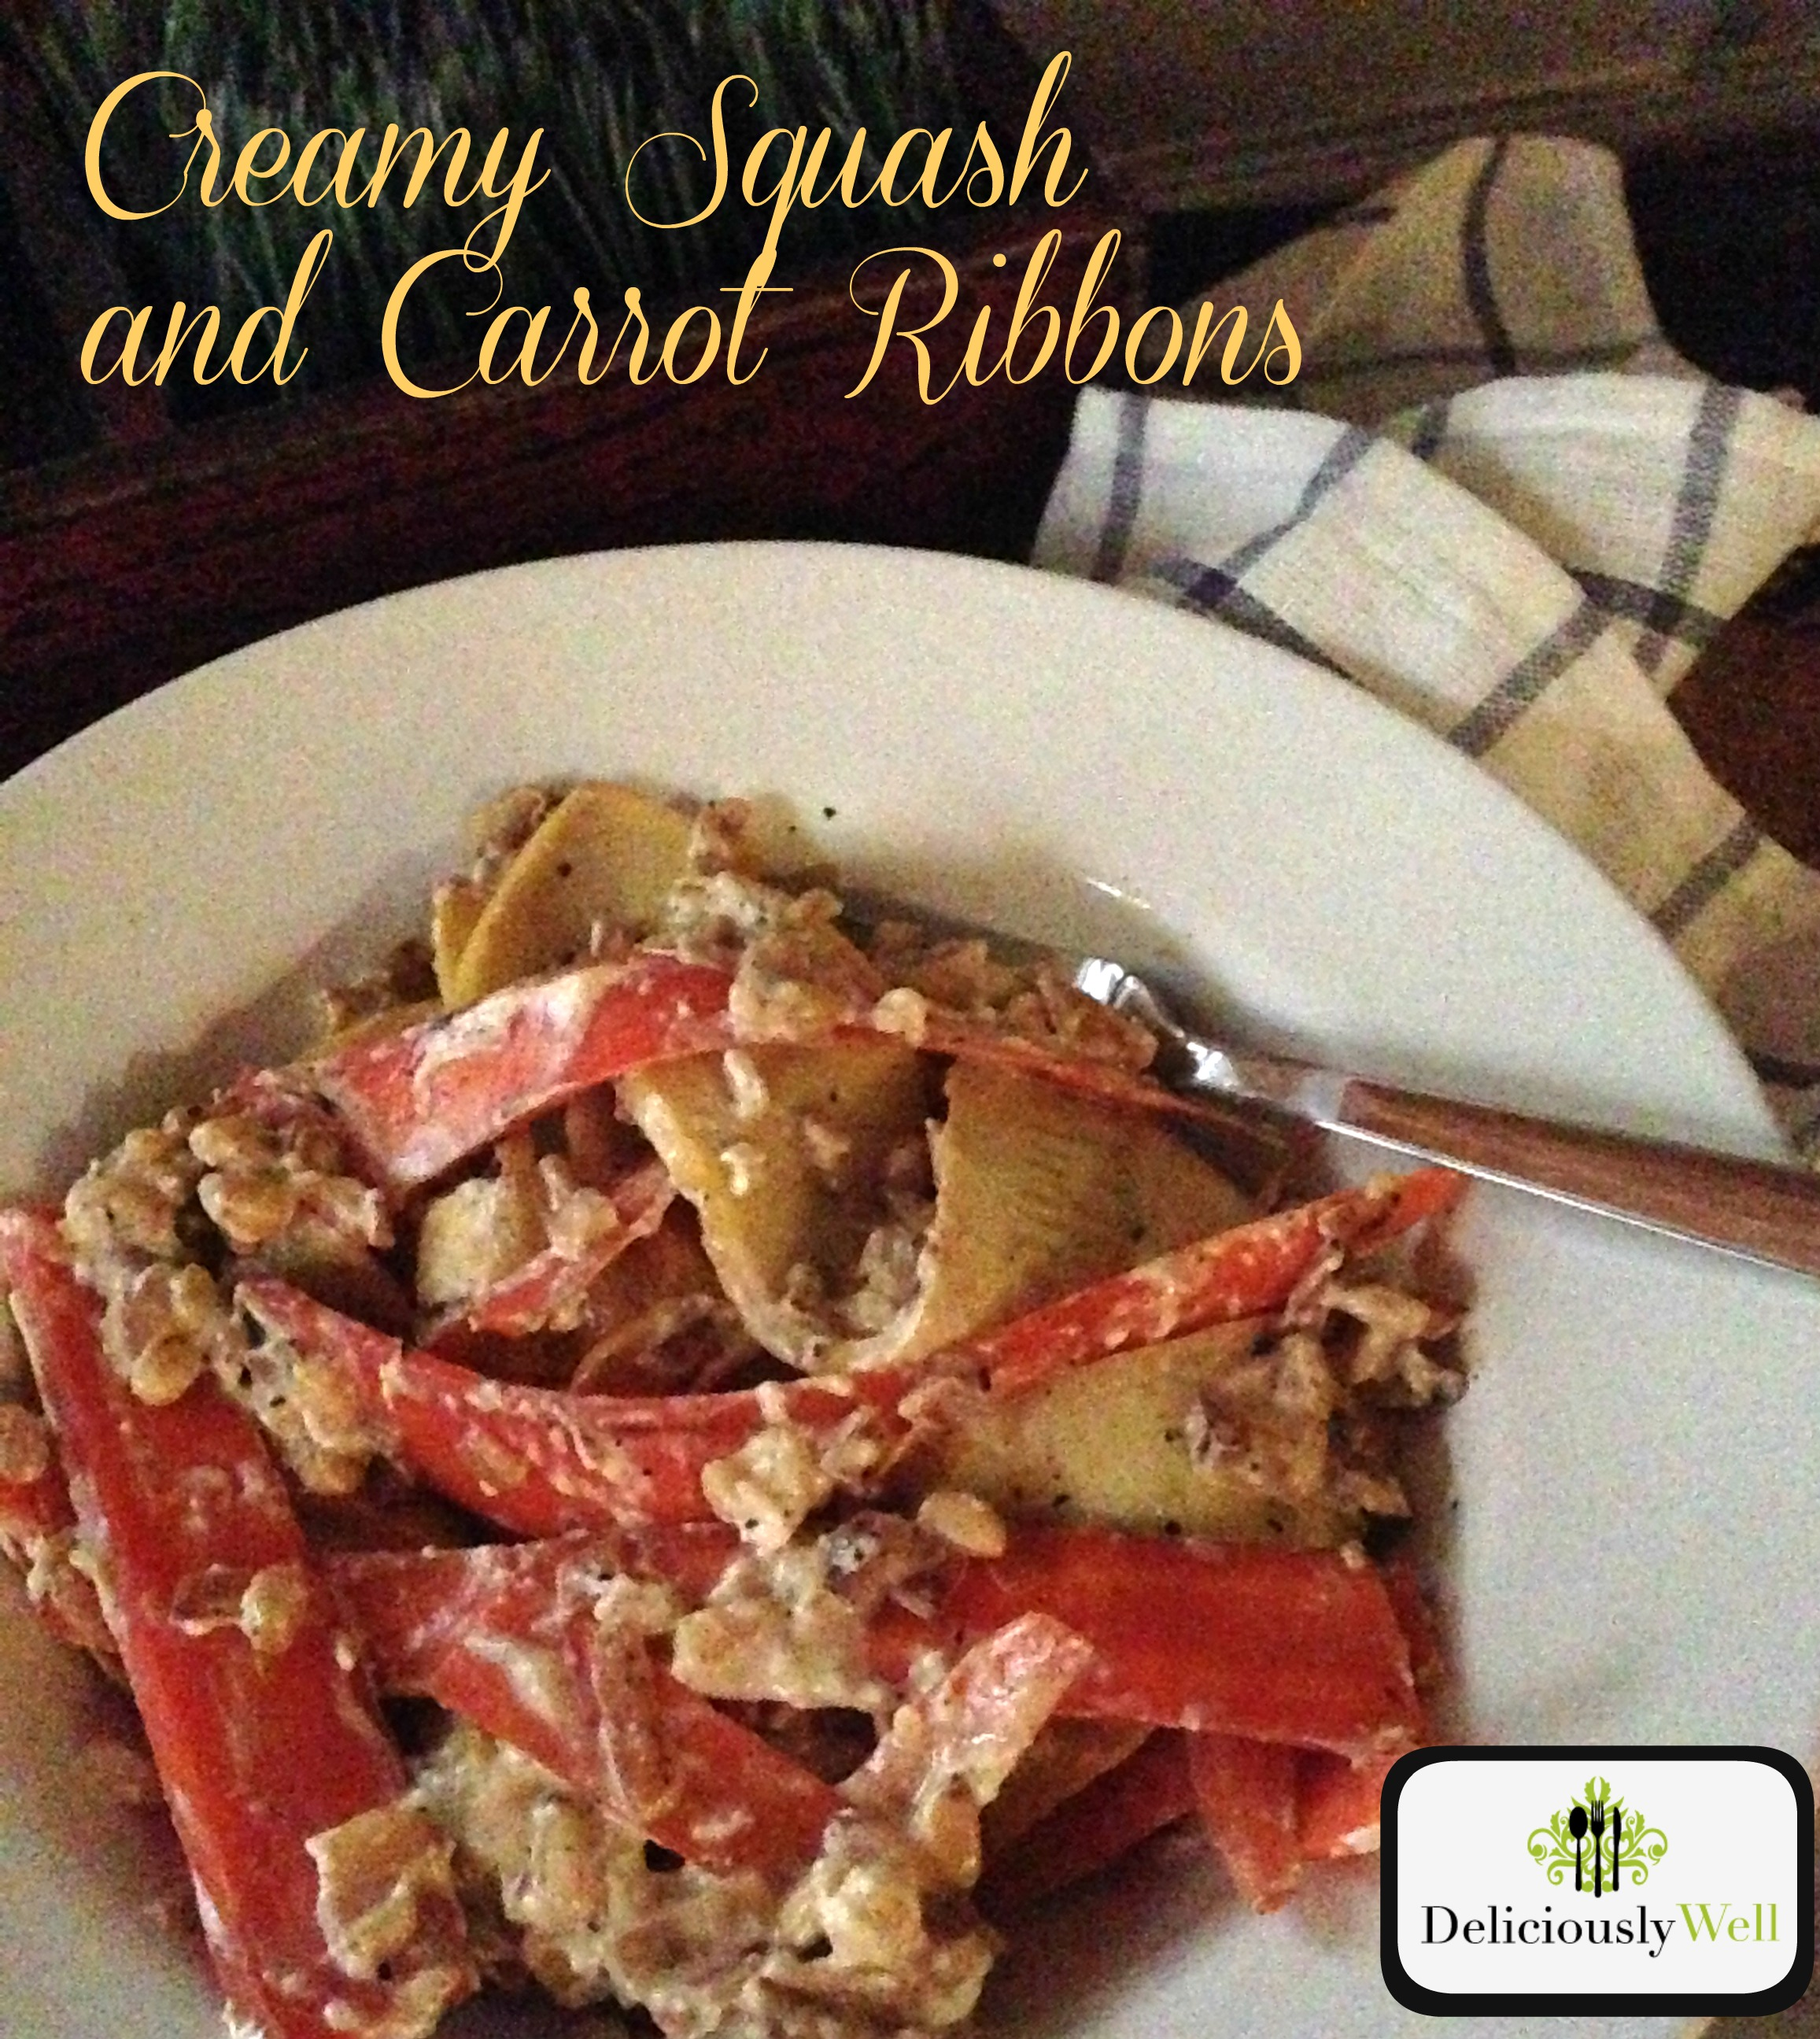 Creamy Squash and Carrot Ribbons